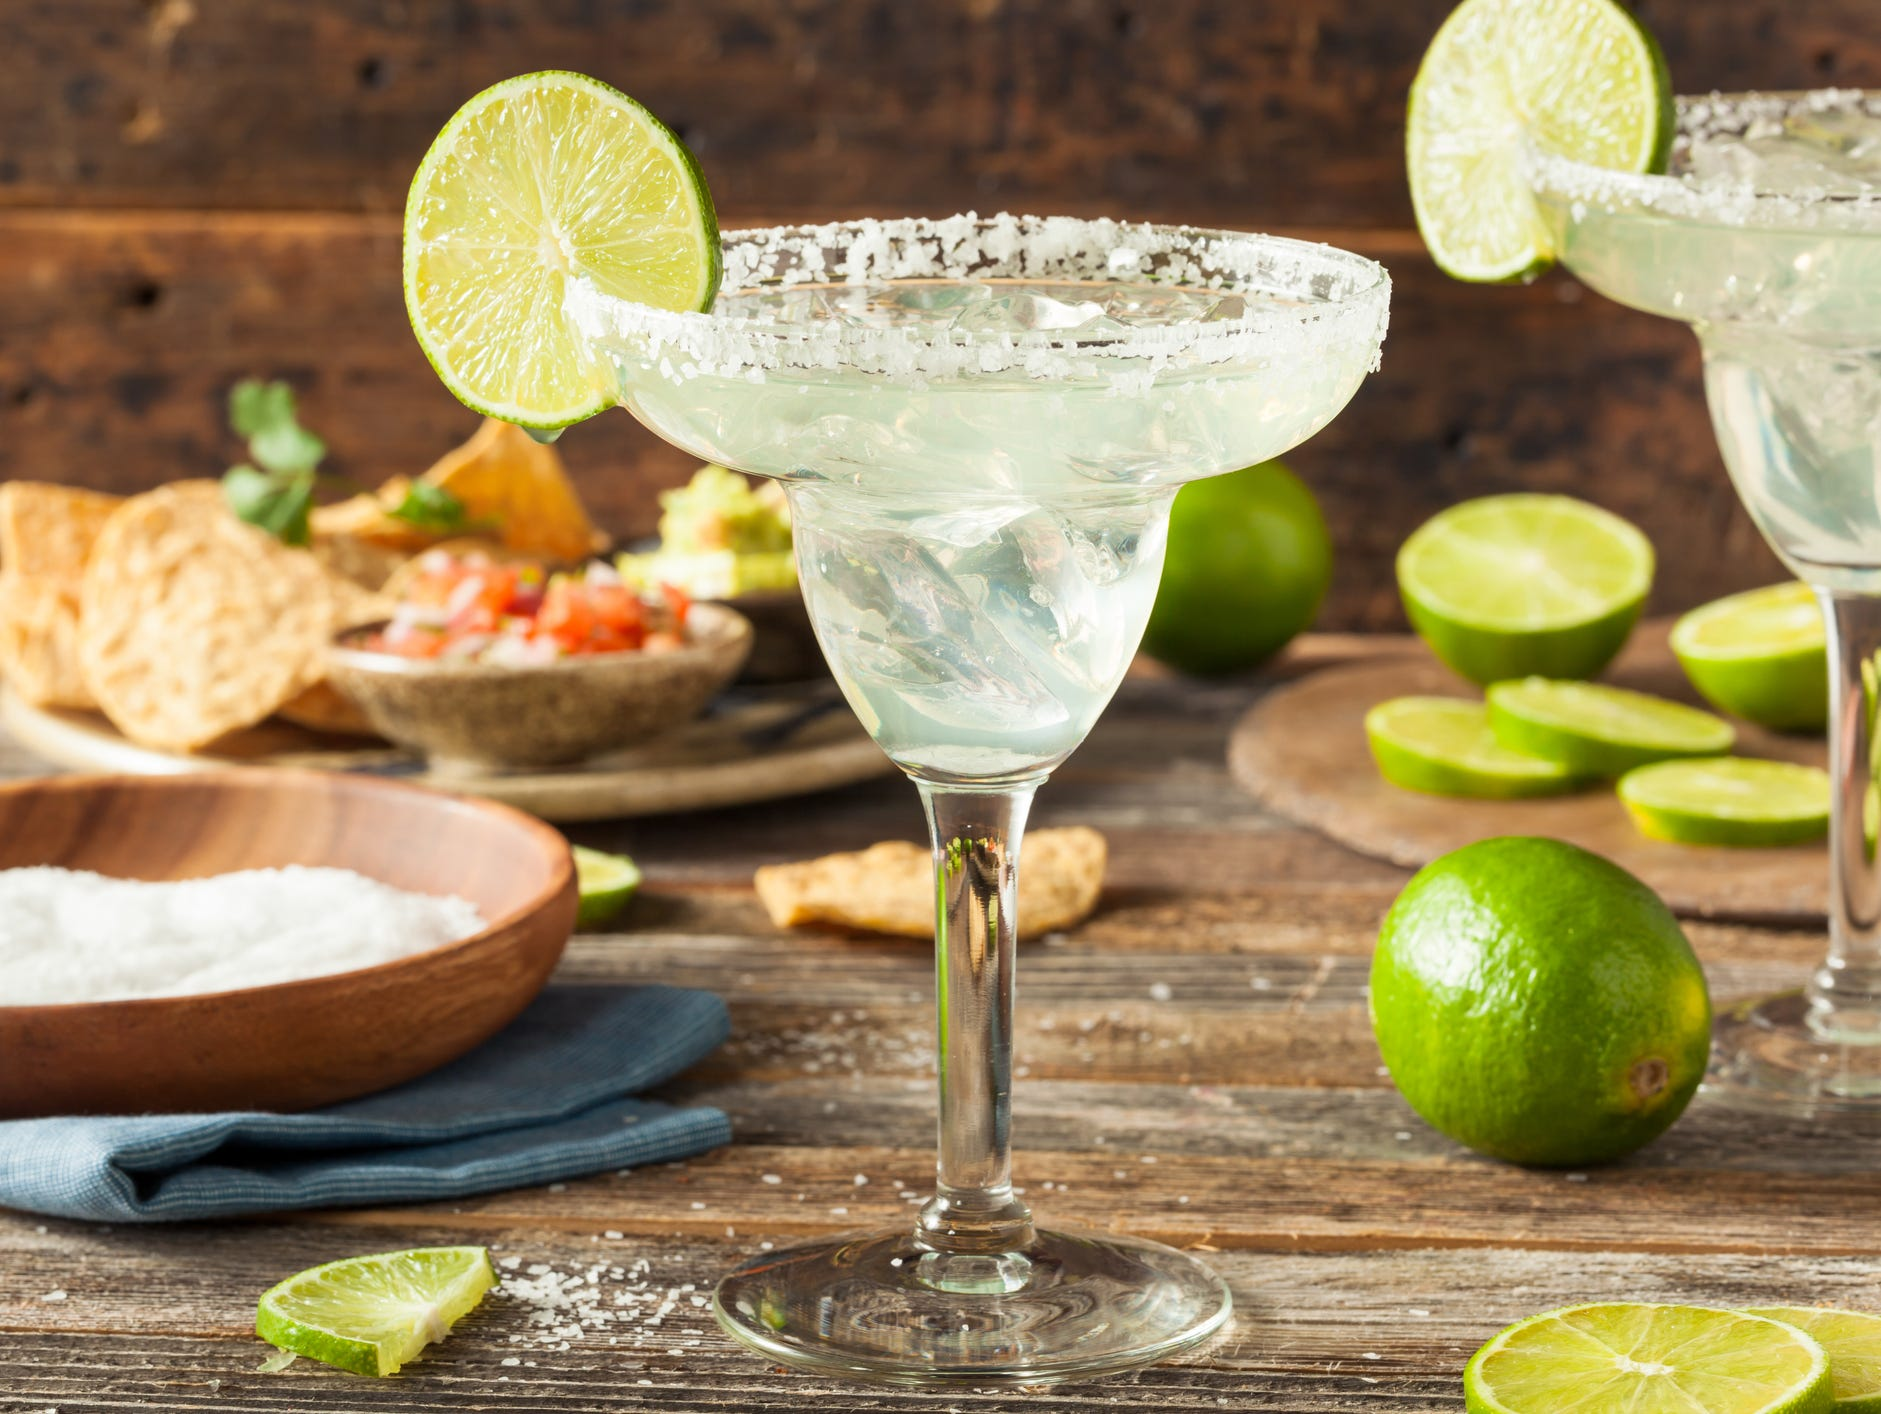 If life gives you limes, make margaritas! Enter for a chance to win a National Margarita Day Bundle. Enter 1/18- 2/12.